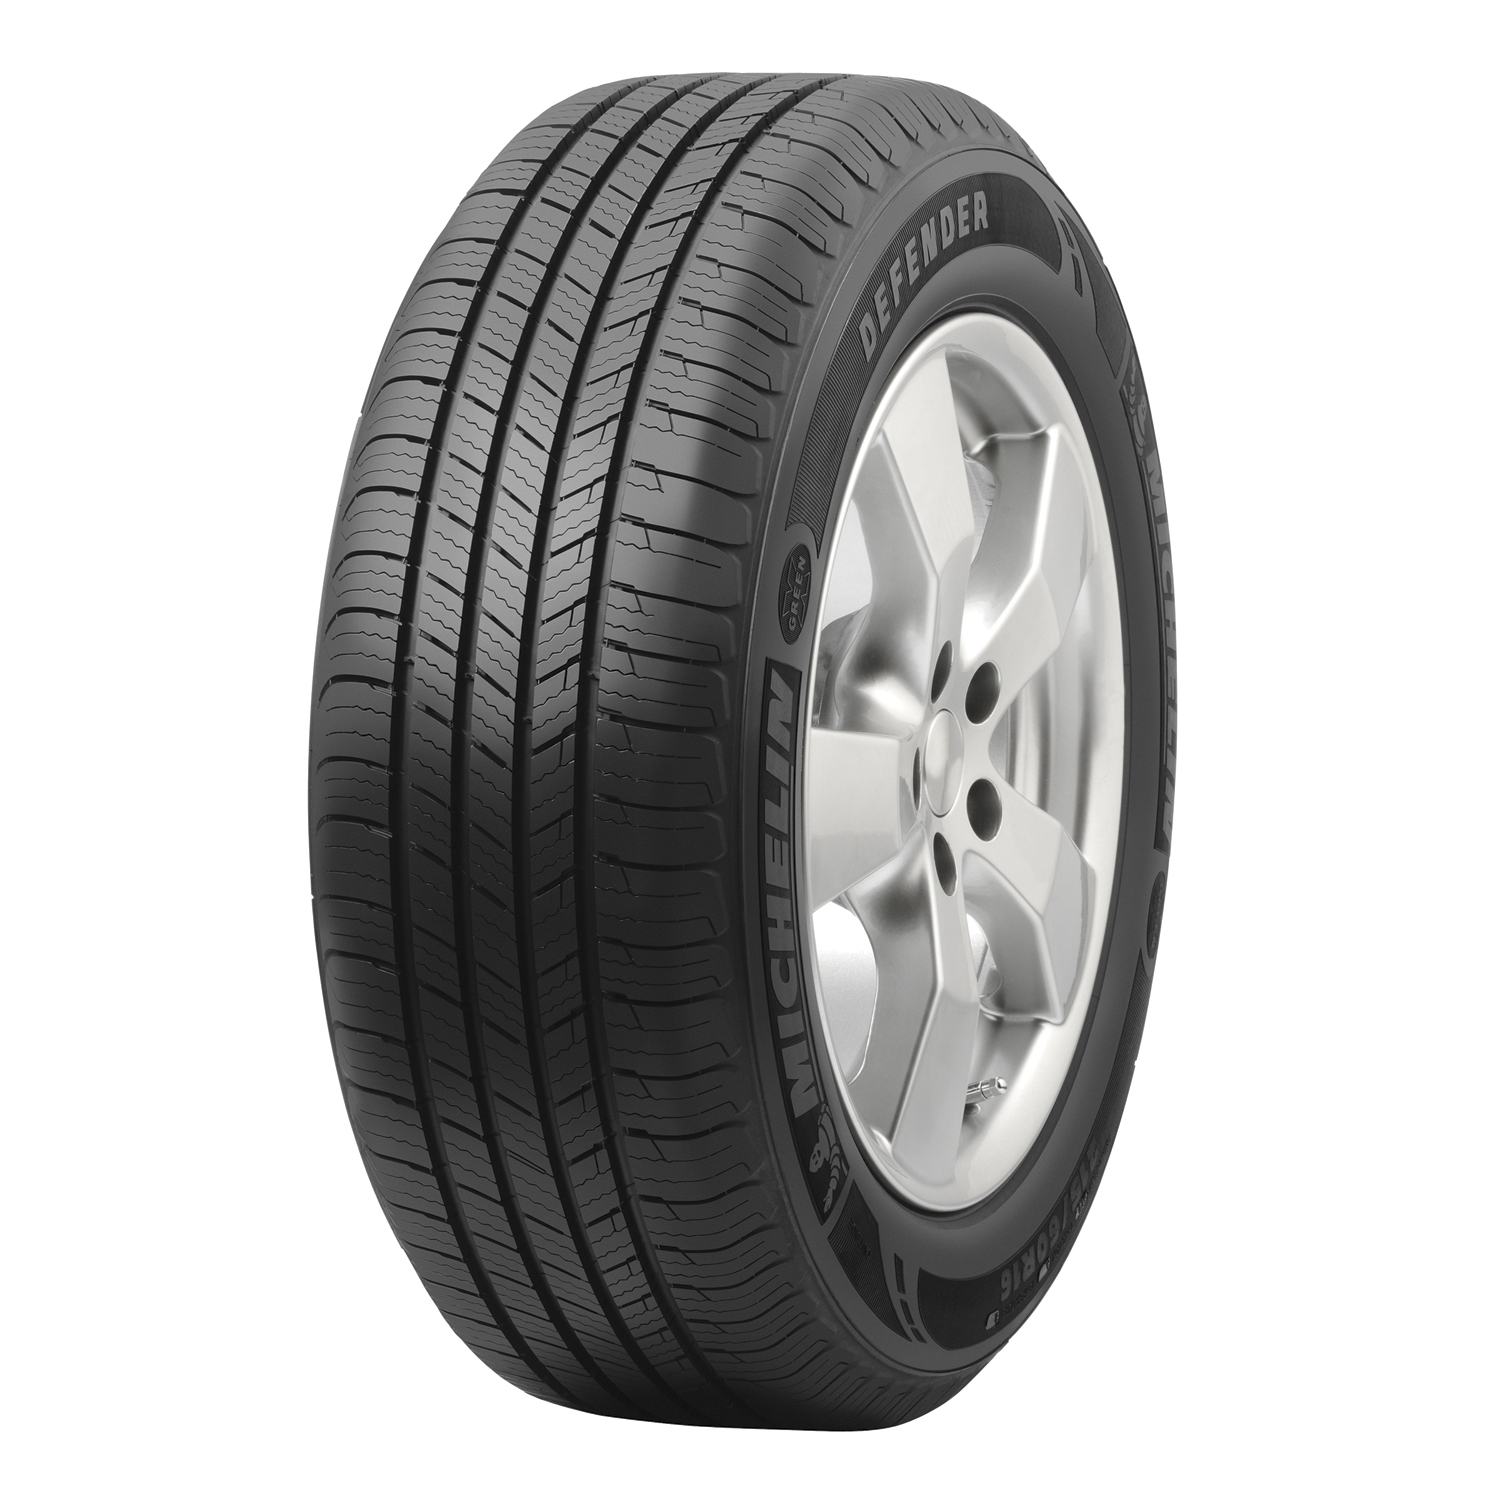 Michelin  Defender - 215/70R15 98T BW - All Season Tire